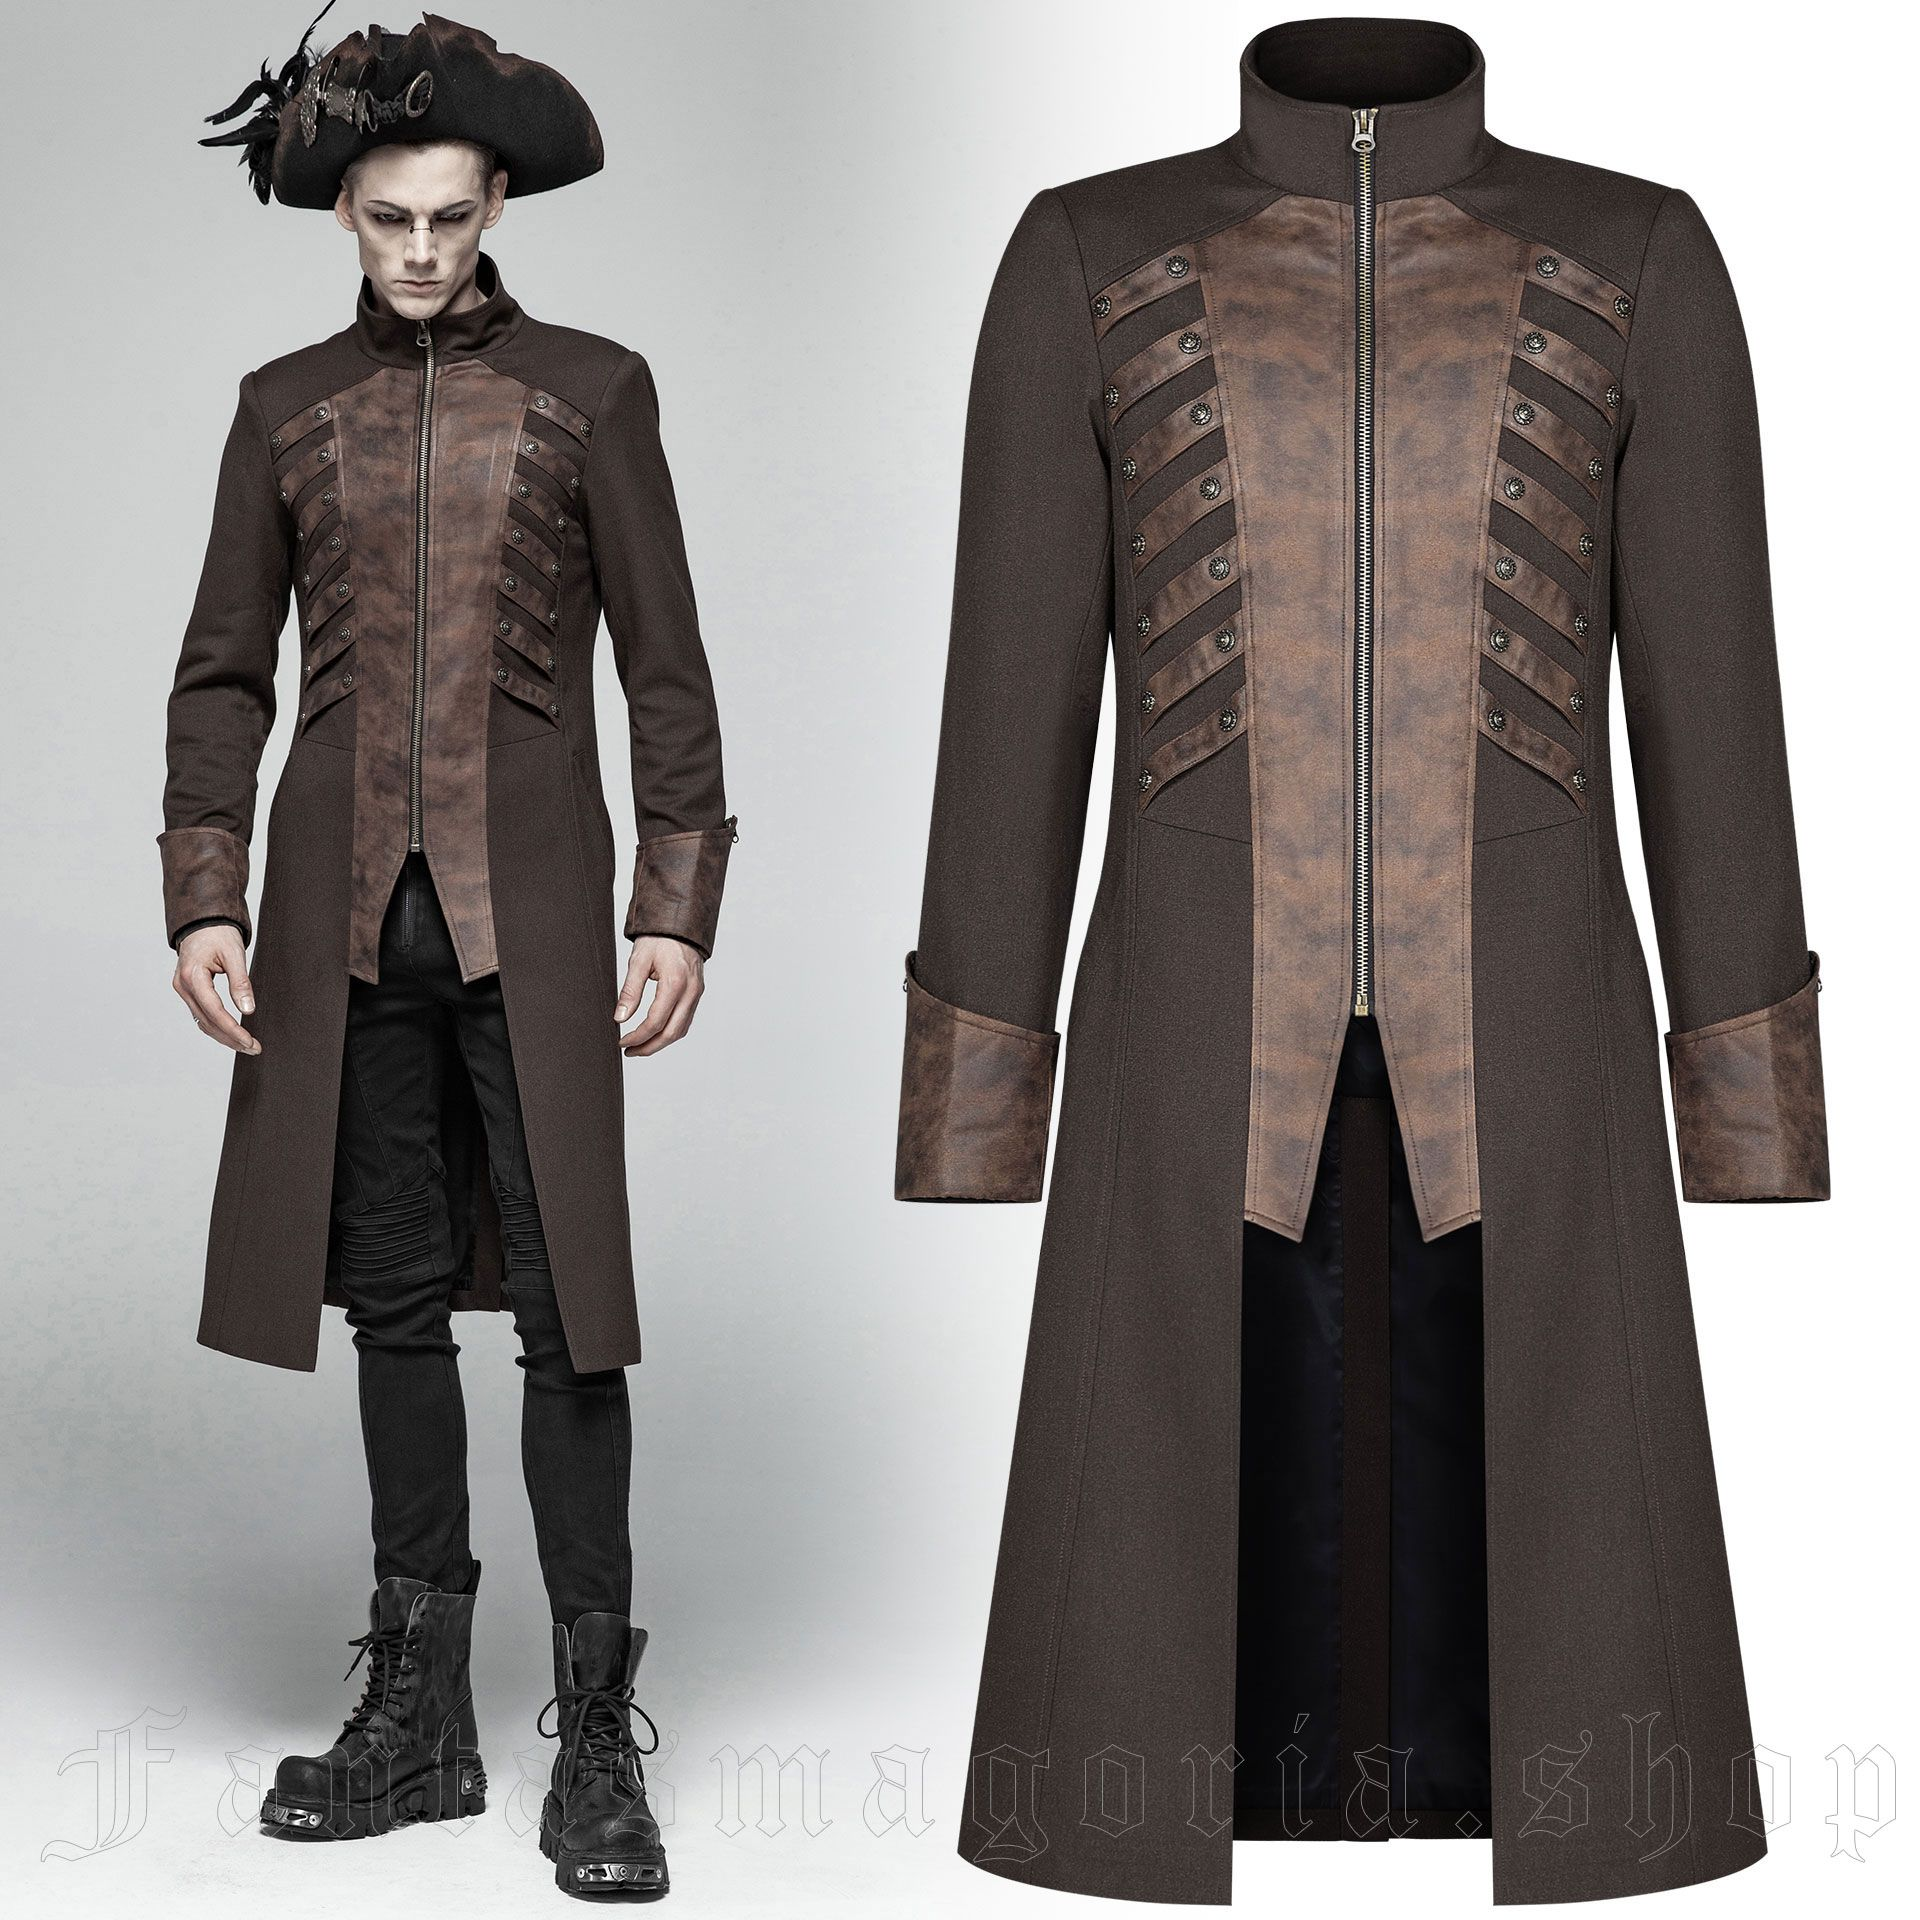 men's Nautilus Coat by PUNK RAVE brand, code: WY-1000/CO